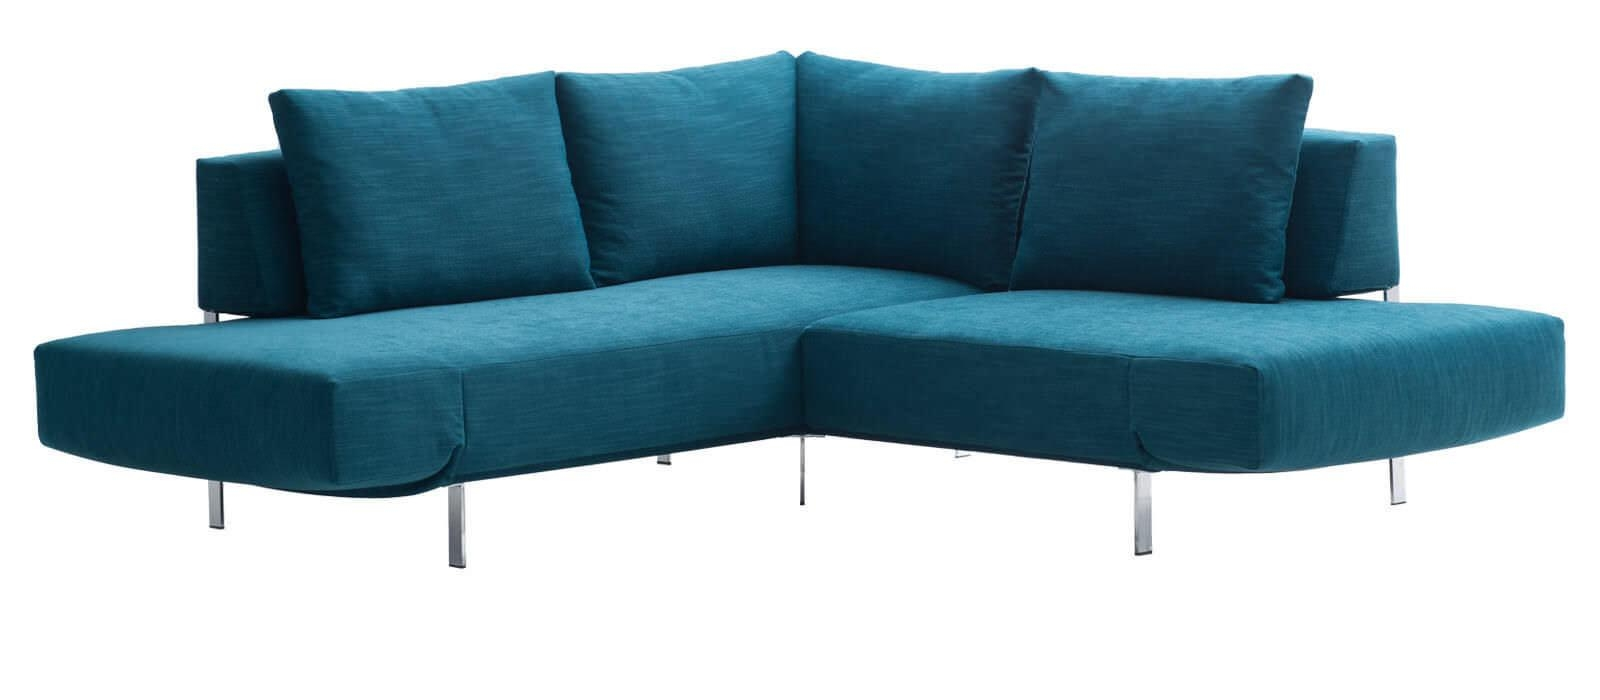 Sofa Bed / Corner / Contemporary / Fabric – Loftj (Image 19 of 20)